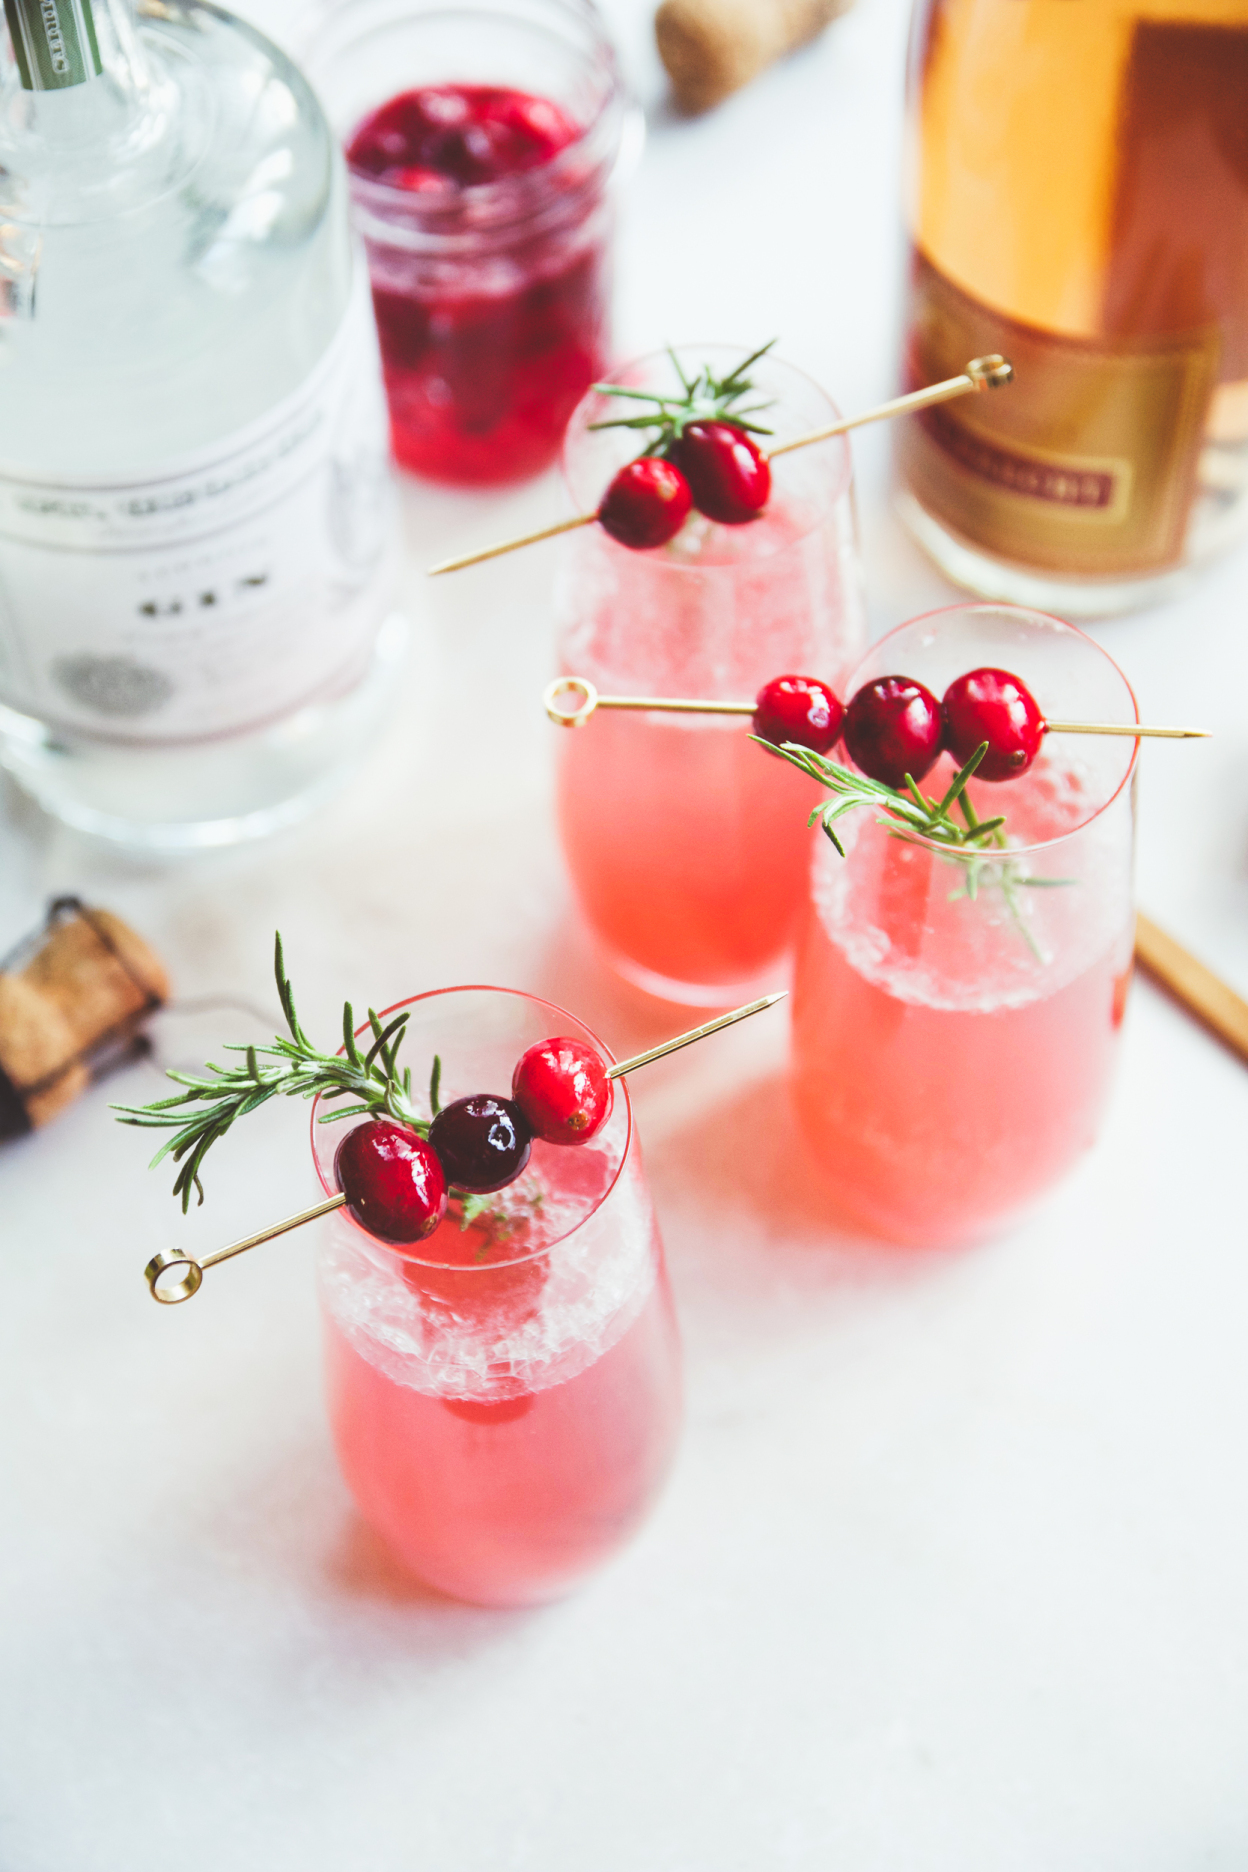 60 New Year's Recipes: New Year's Appetizers Cocktails // thislilpiglet.net